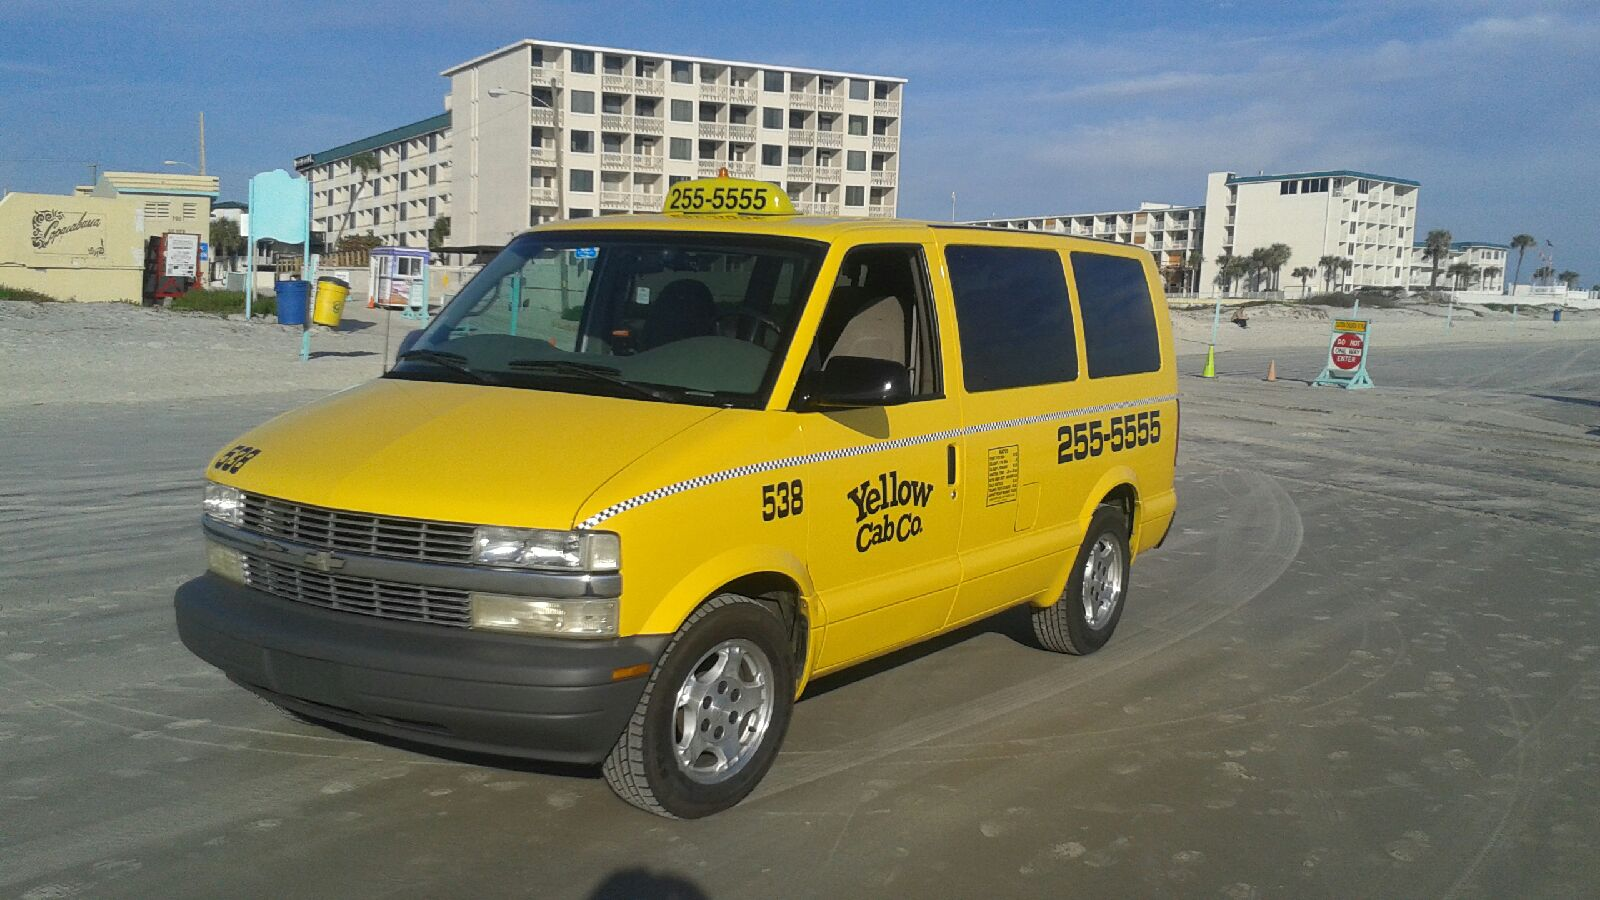 Daytona Beach Taxi Yellow Cab Cruises The